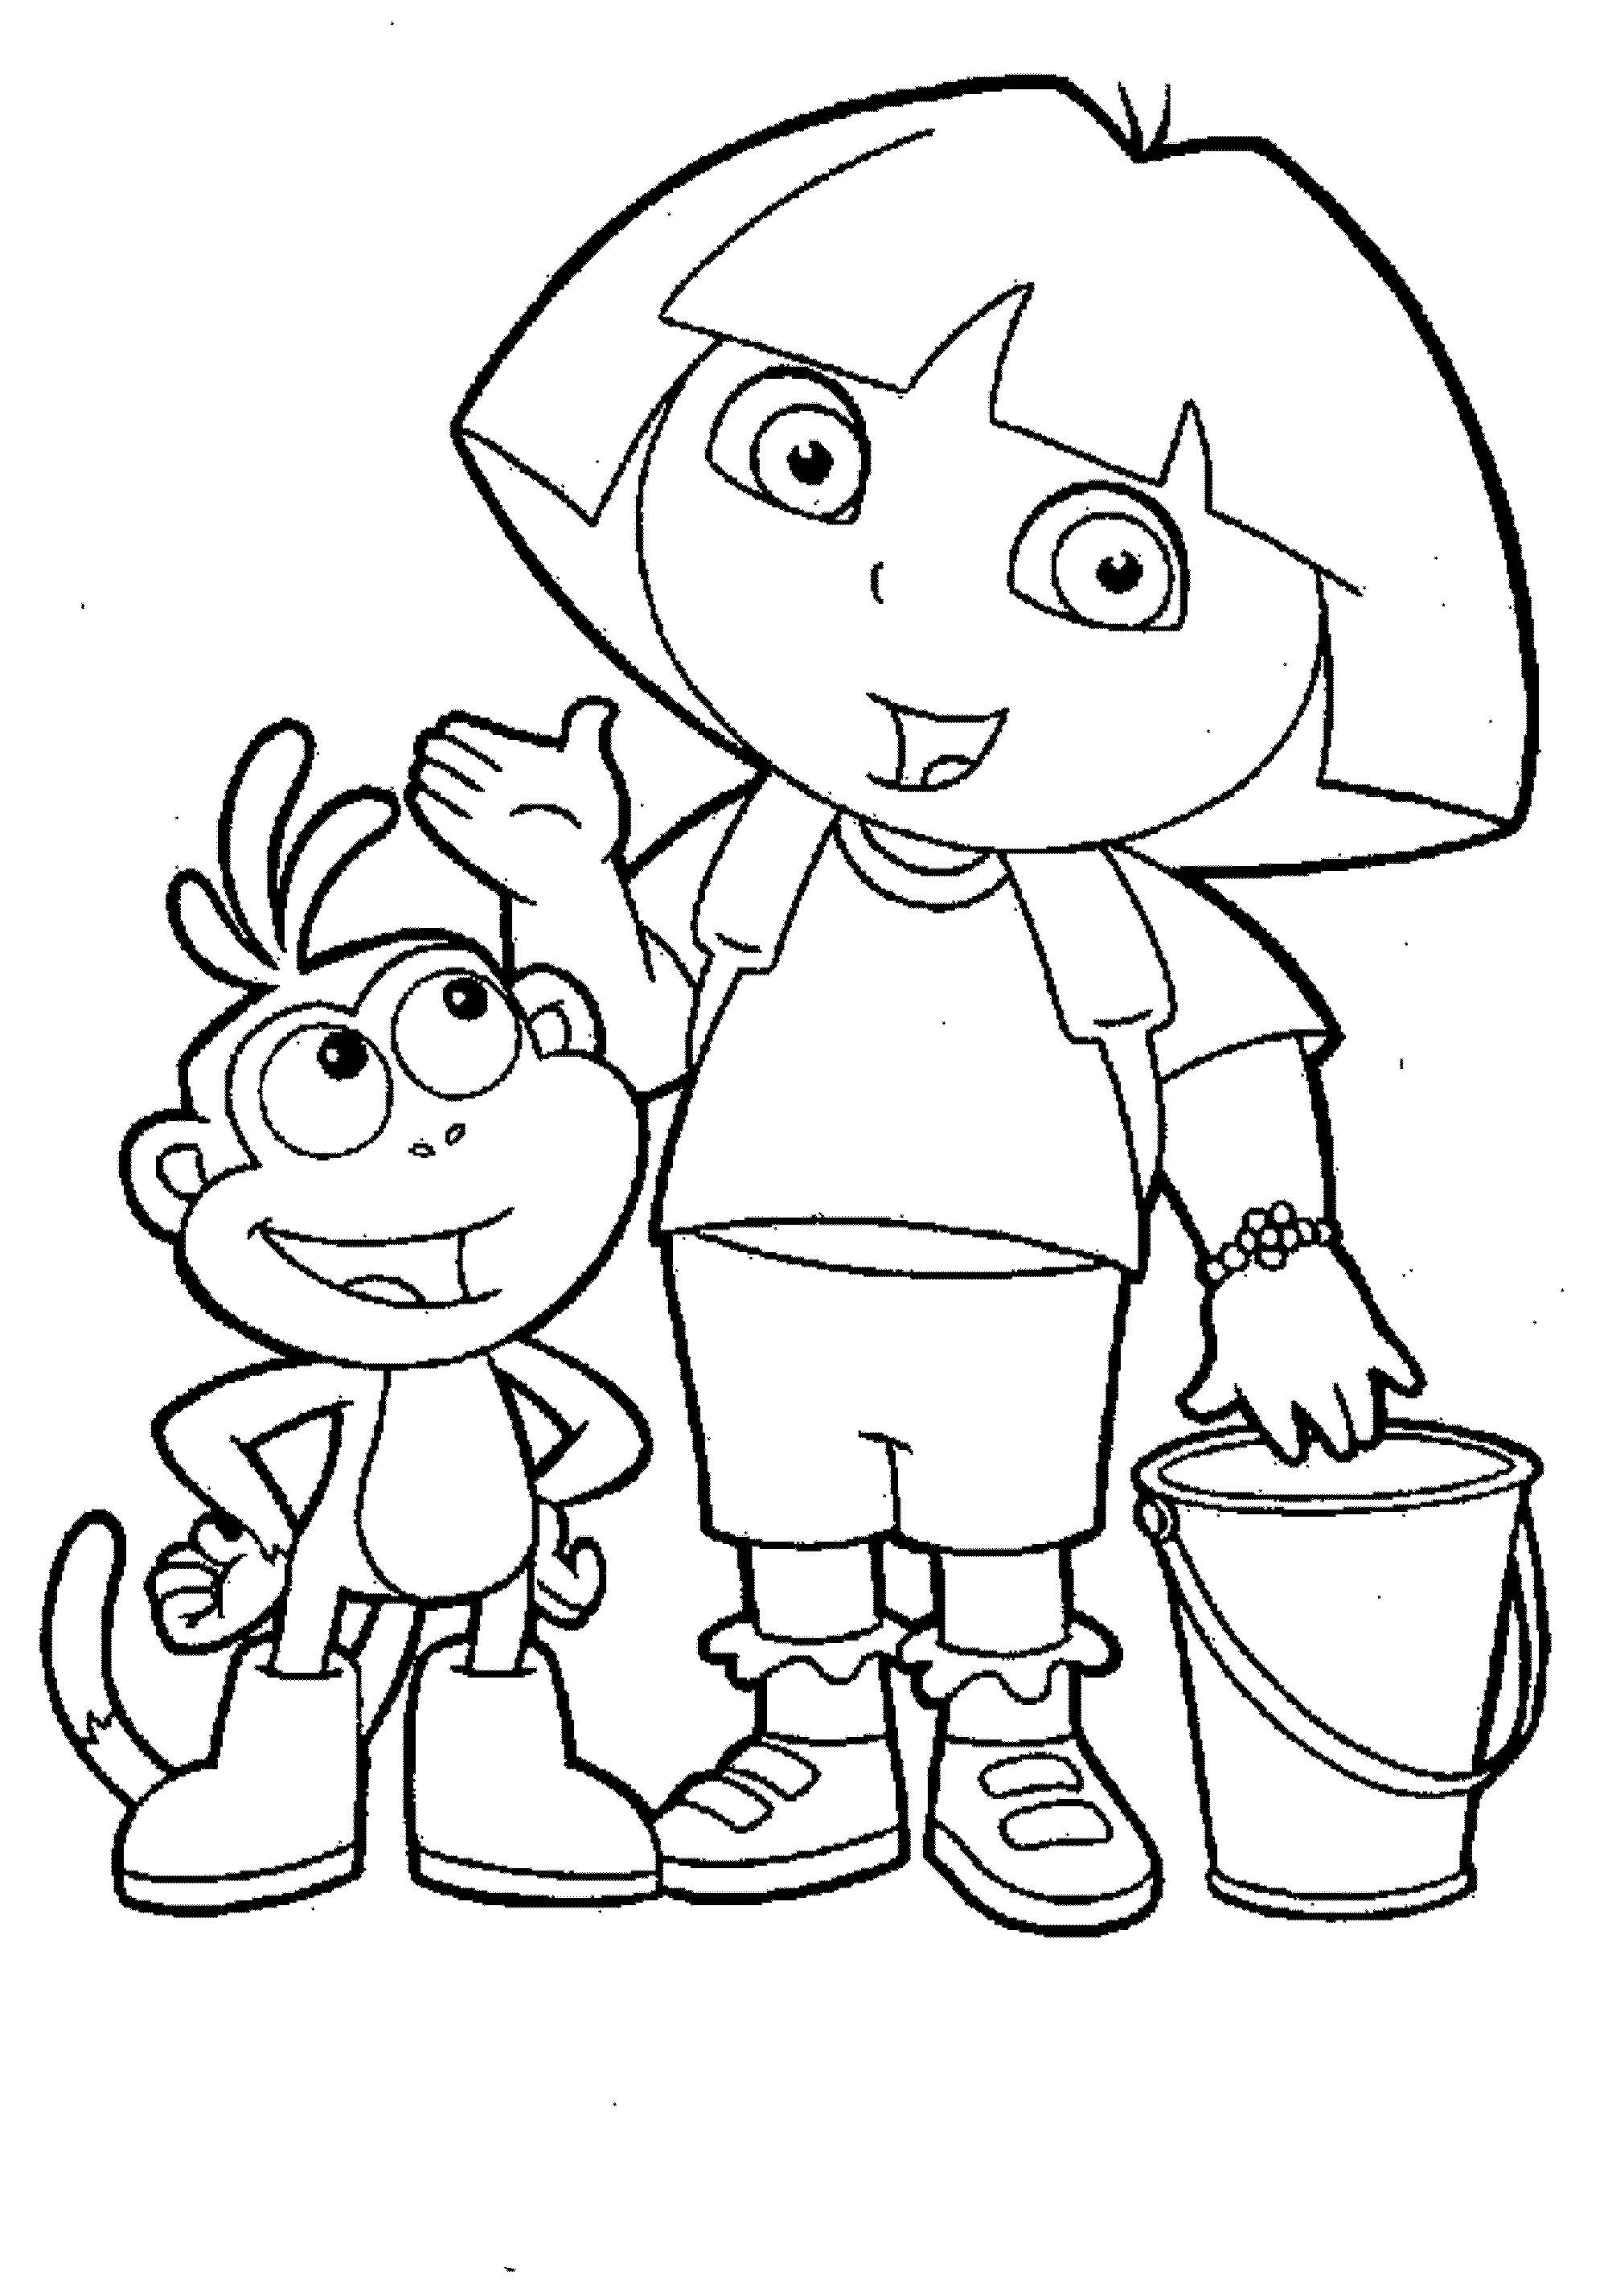 pictures of dora to color dora coloring pages cutecoloringcom of to color pictures dora